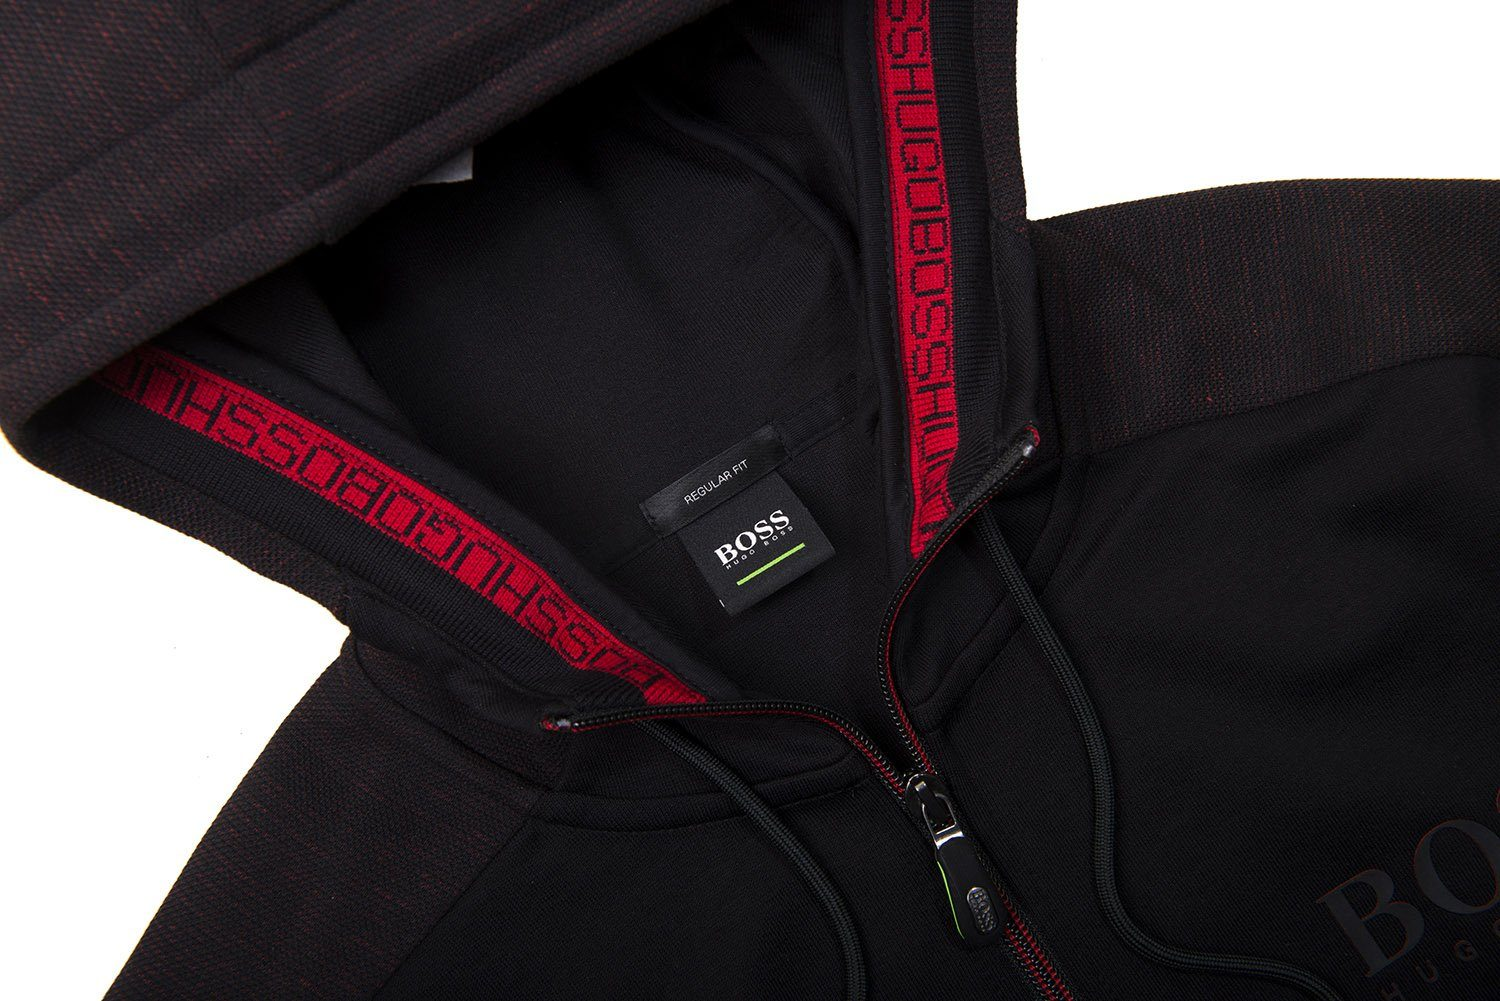 BOSS Athleisure Saggy Ziphood Sweatshirt in Black / Red